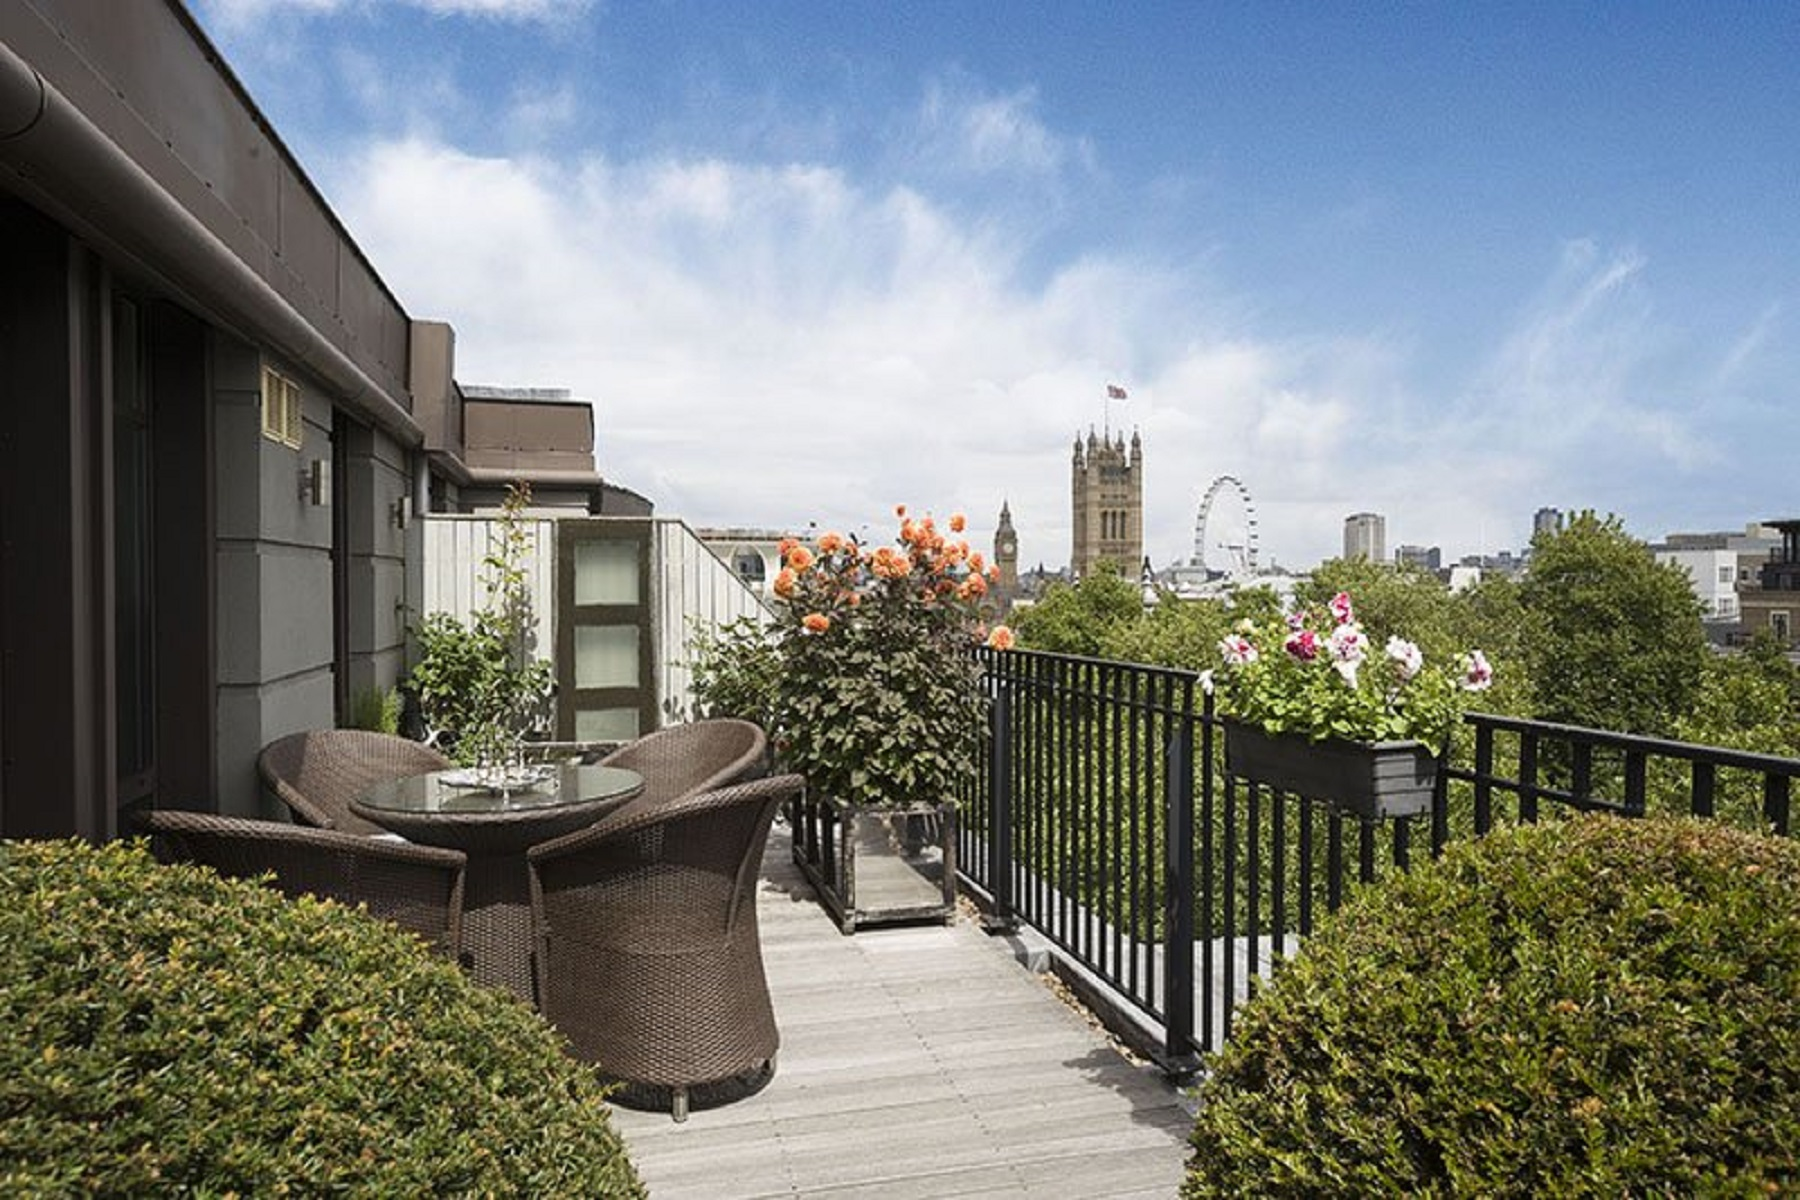 Single Family Home for Sale at Marsham street London, England, United Kingdom